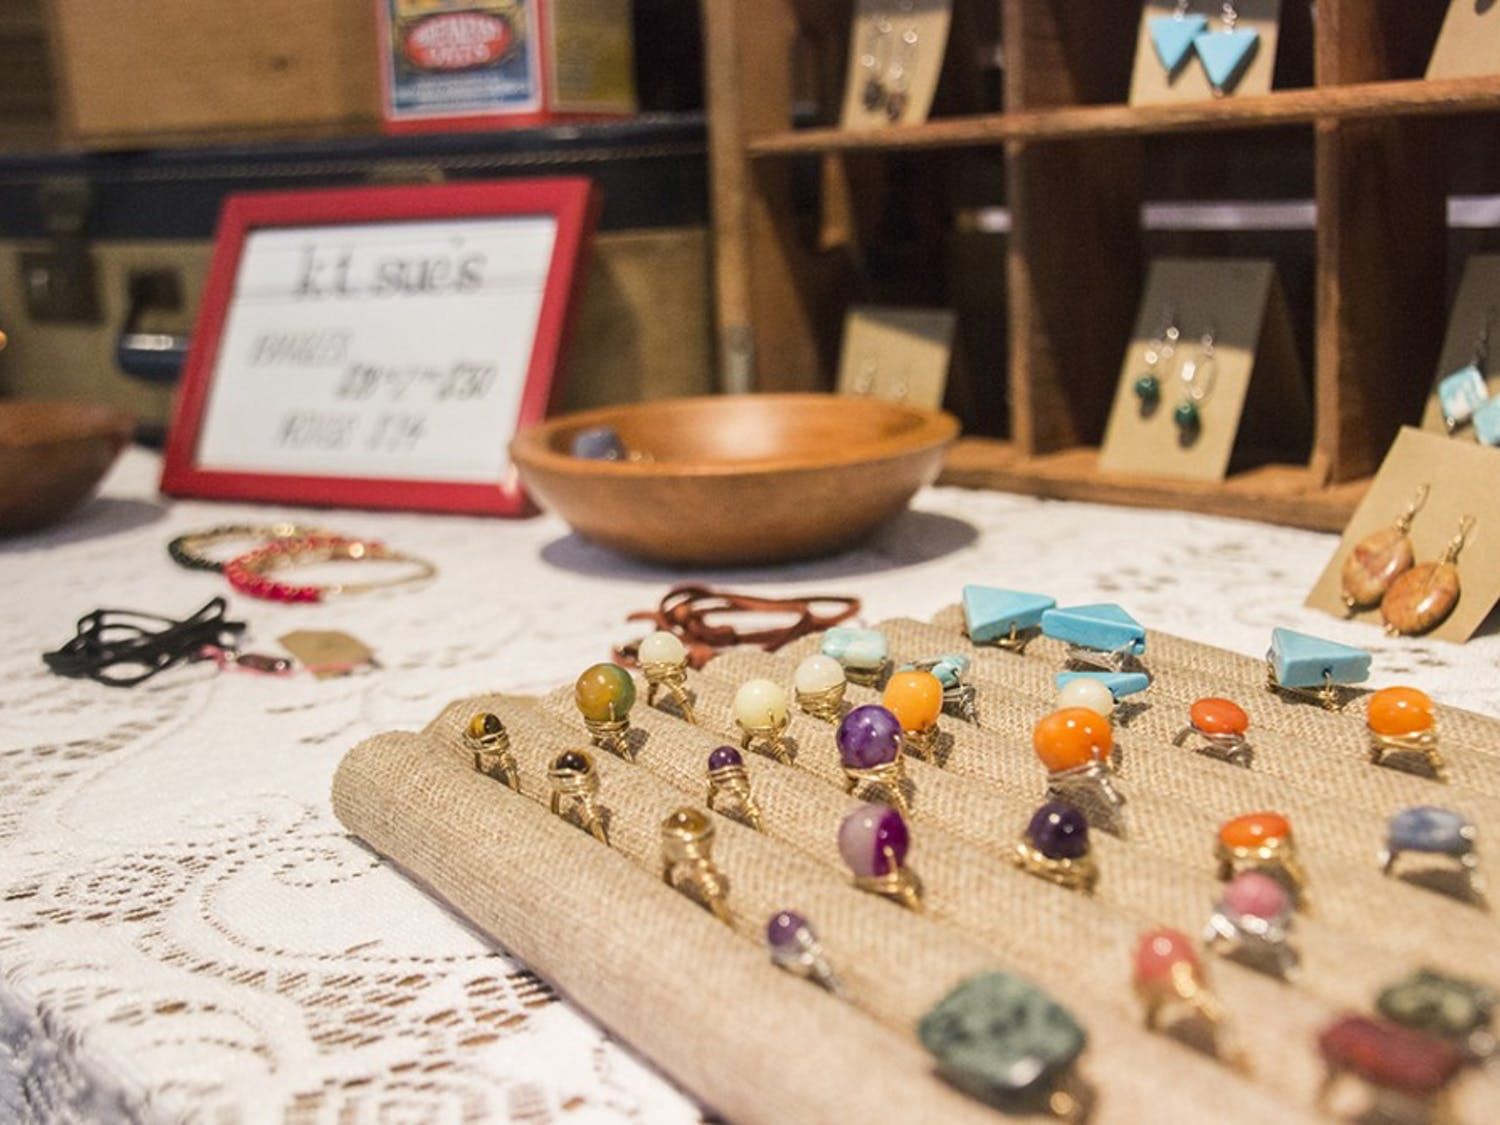 Each vendor at the Indie South Fair had his or herown unique style,ranging from handmade to jewelry to lamps made from various household items.